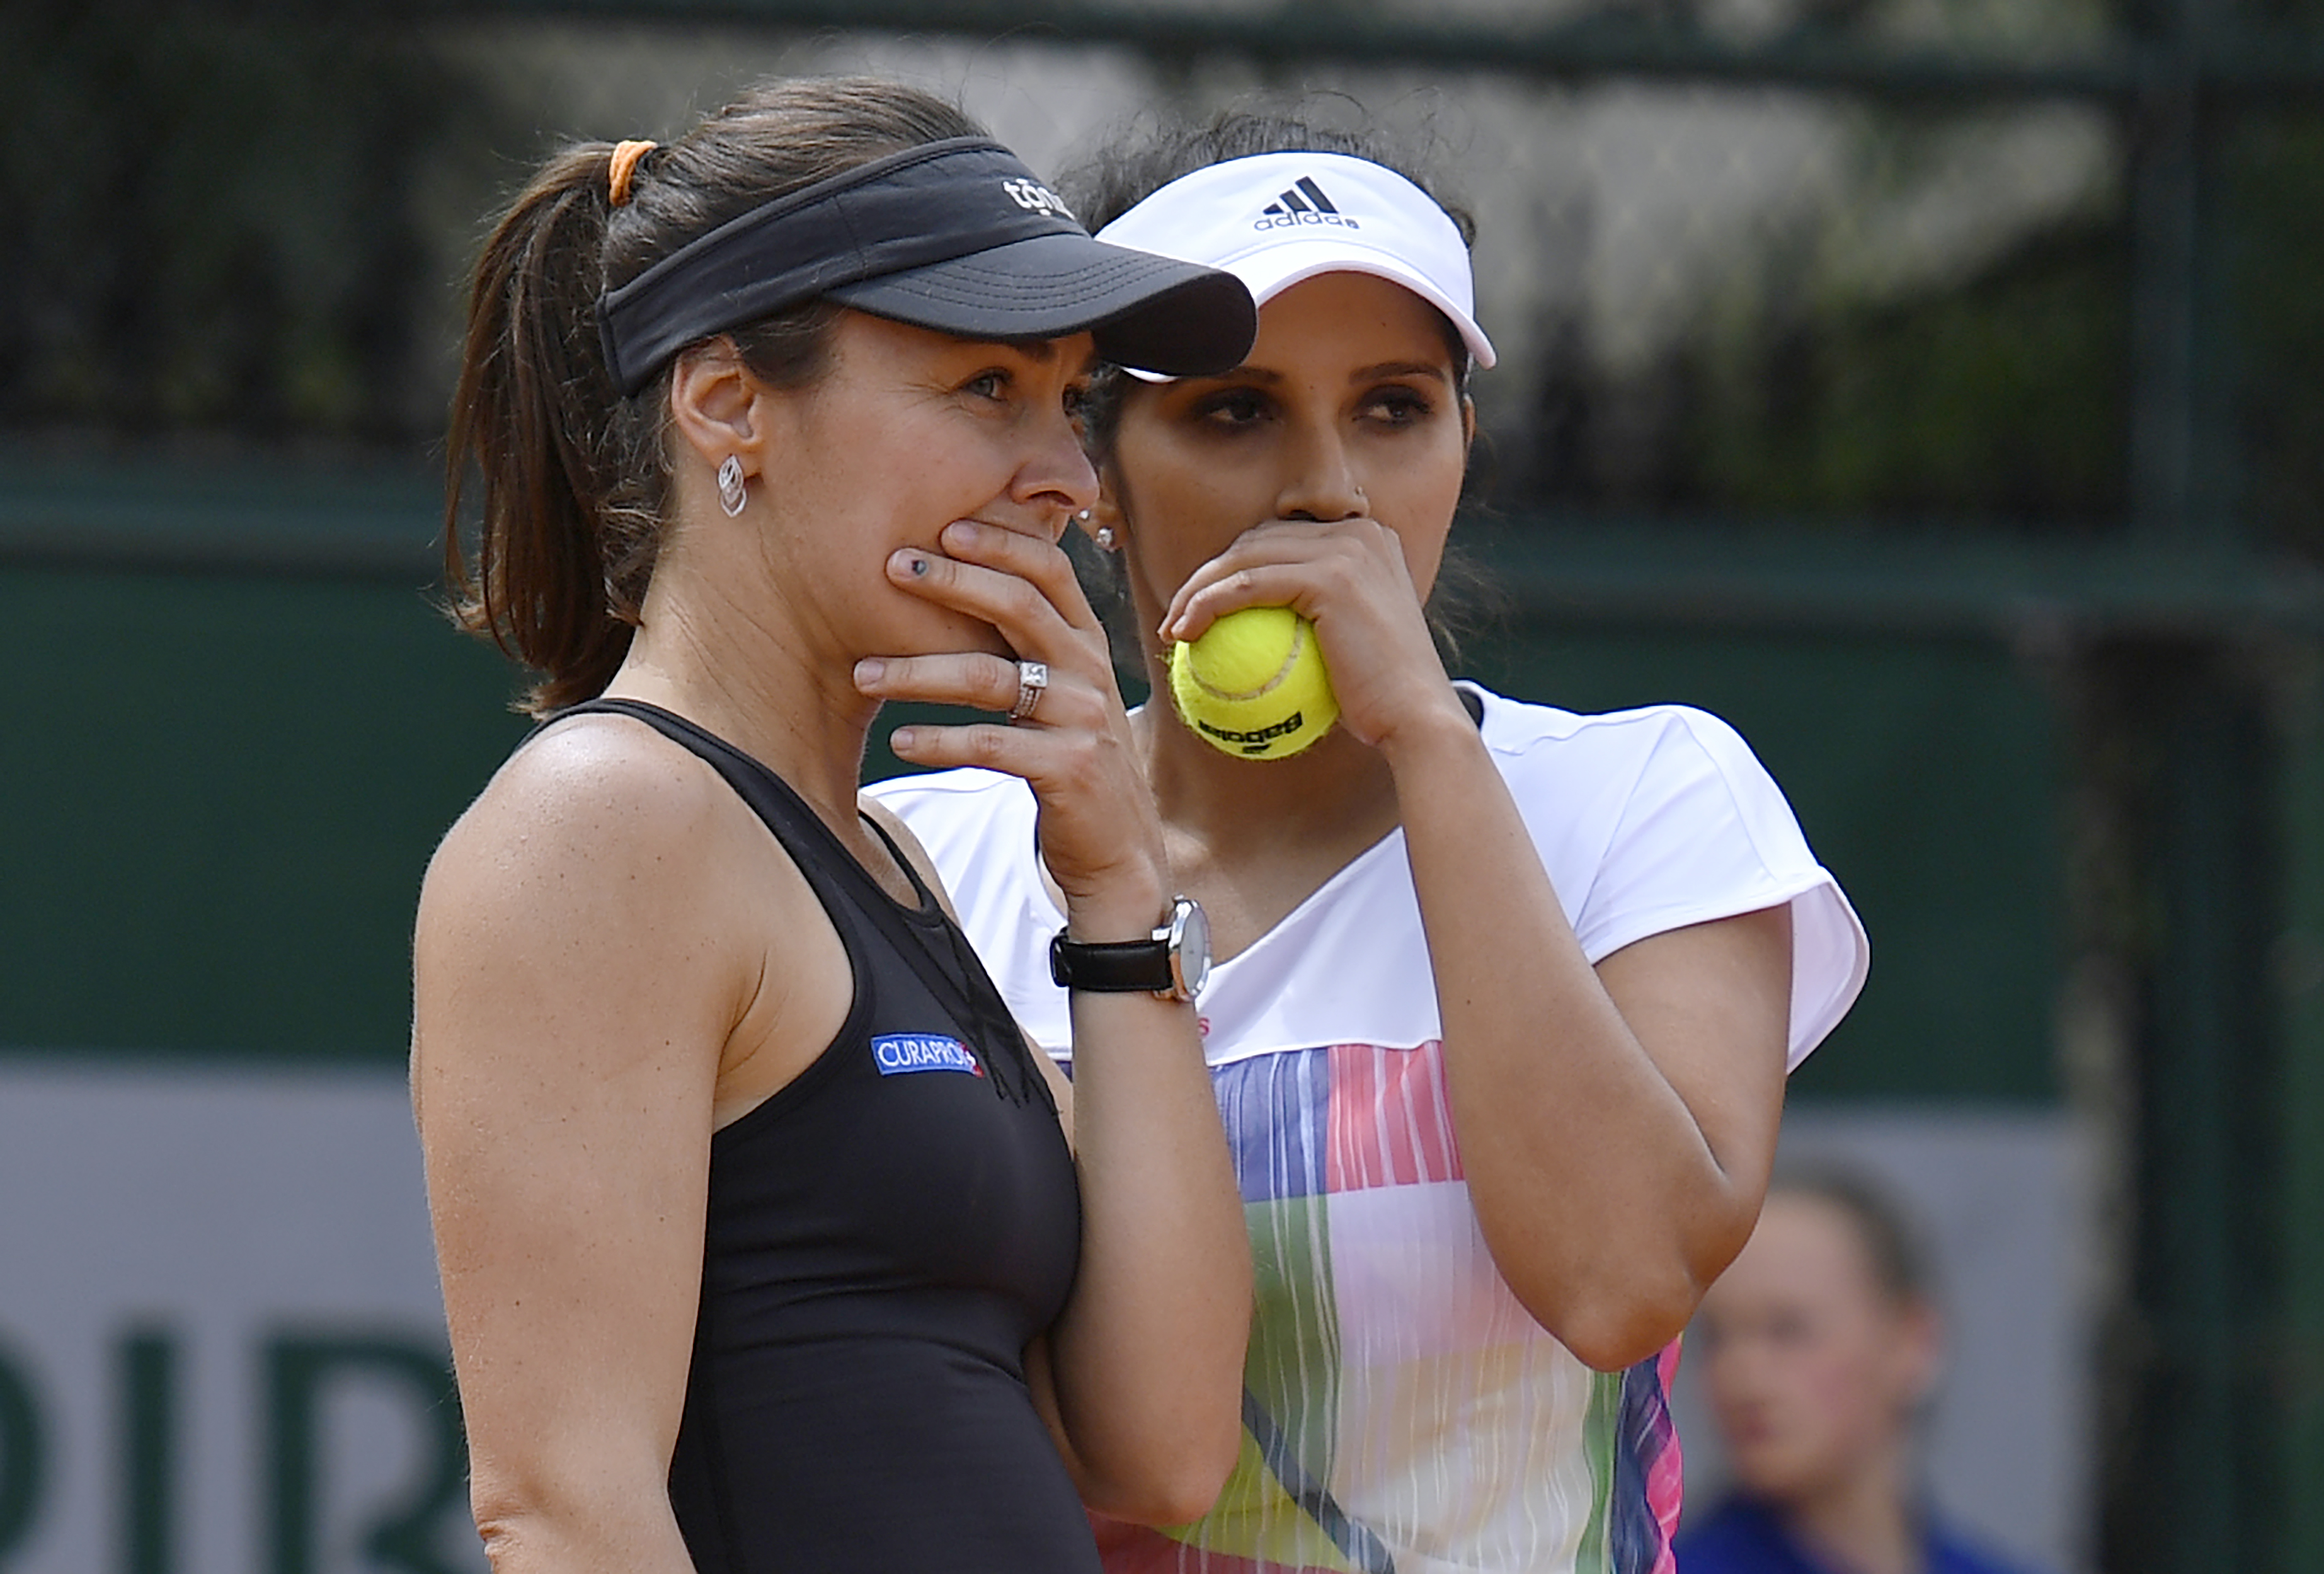 Switzerland's Martina Hingis (L) speaks to her teammate India's Sania Mirza during their women's first round doubles match against Russia's Daria Kasatkina and Alexandra Panova at the Roland Garros 2016 French Tennis Open in Paris on May 25, 2016. / AFP PHOTO / MARTIN BUREAU